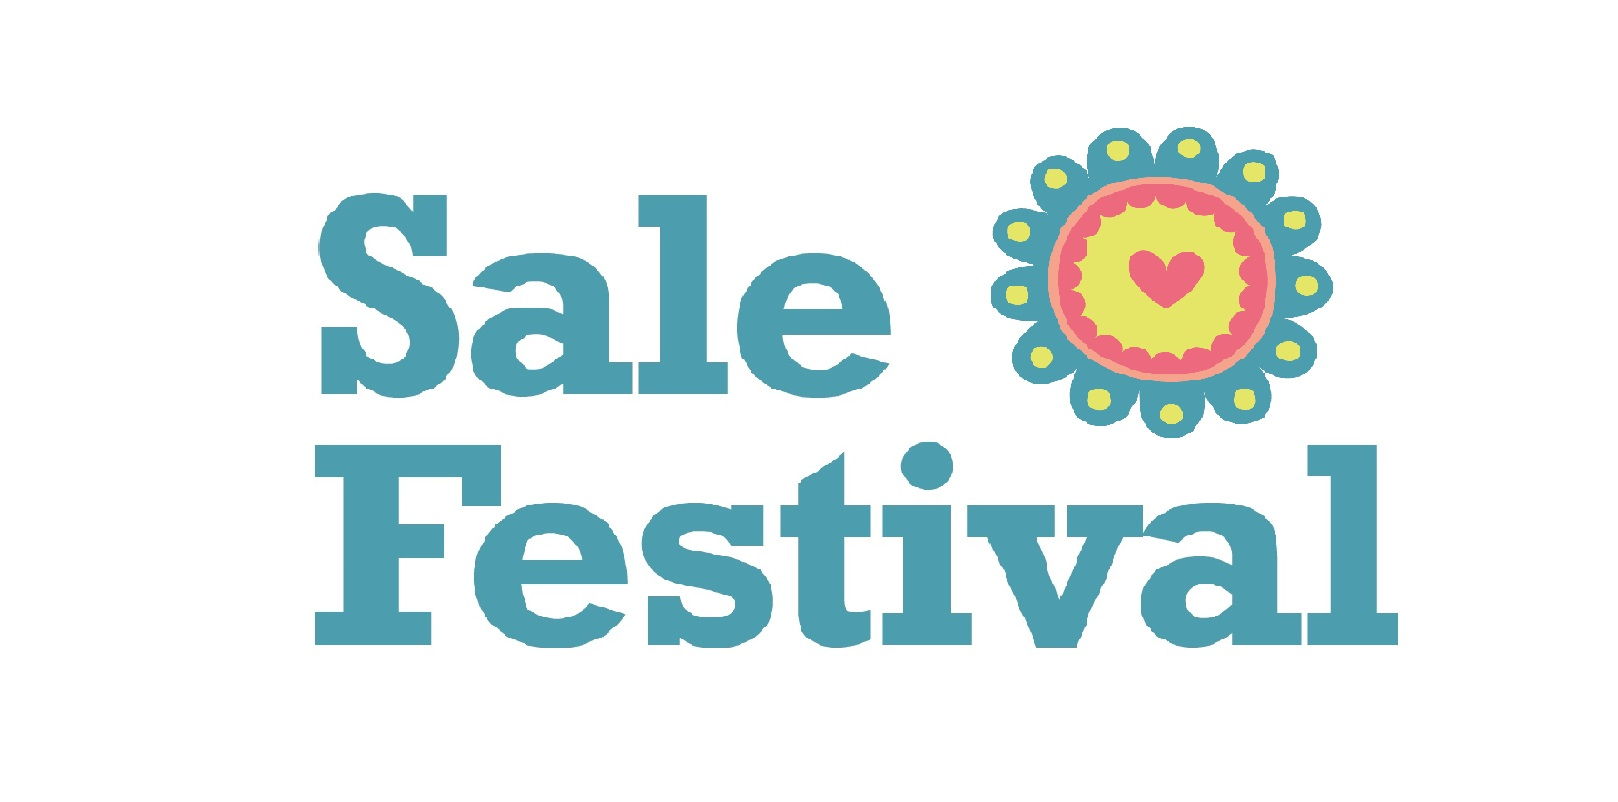 Sale Festival: Adventure in Wine